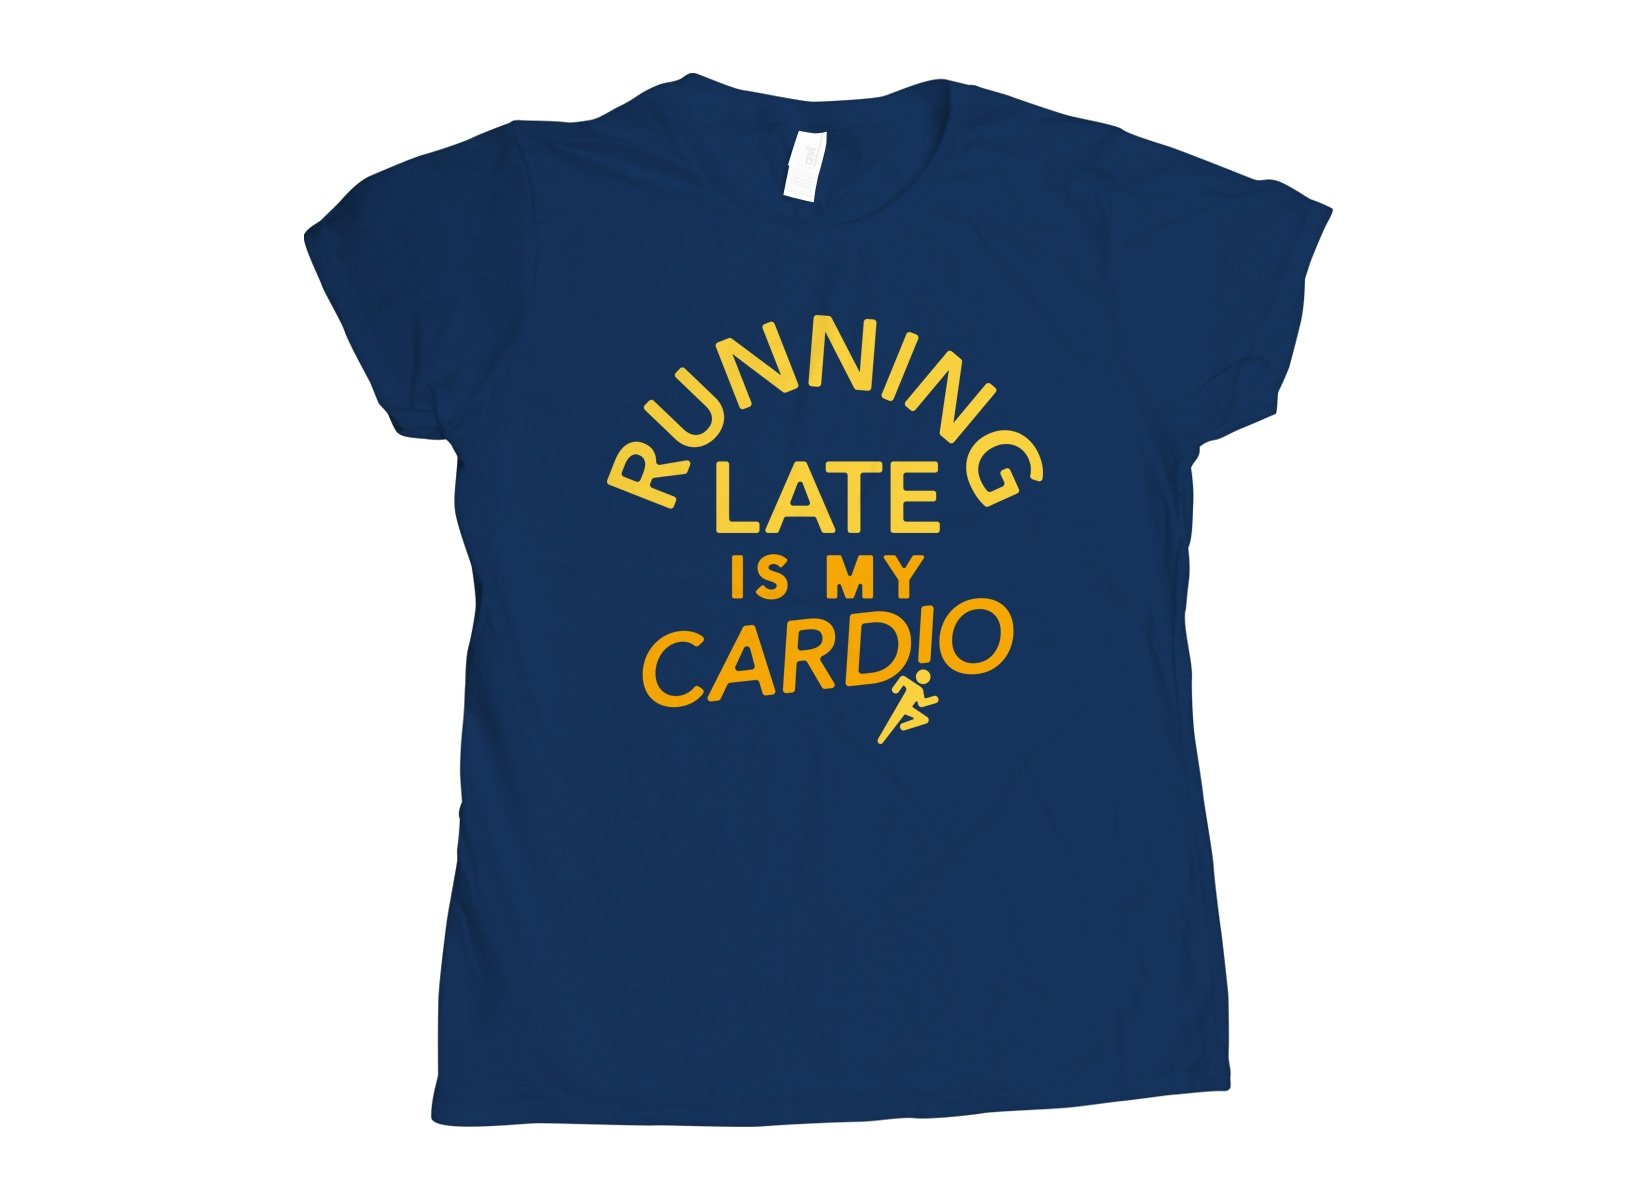 Running Late Is My Cardio on Womens T-Shirt